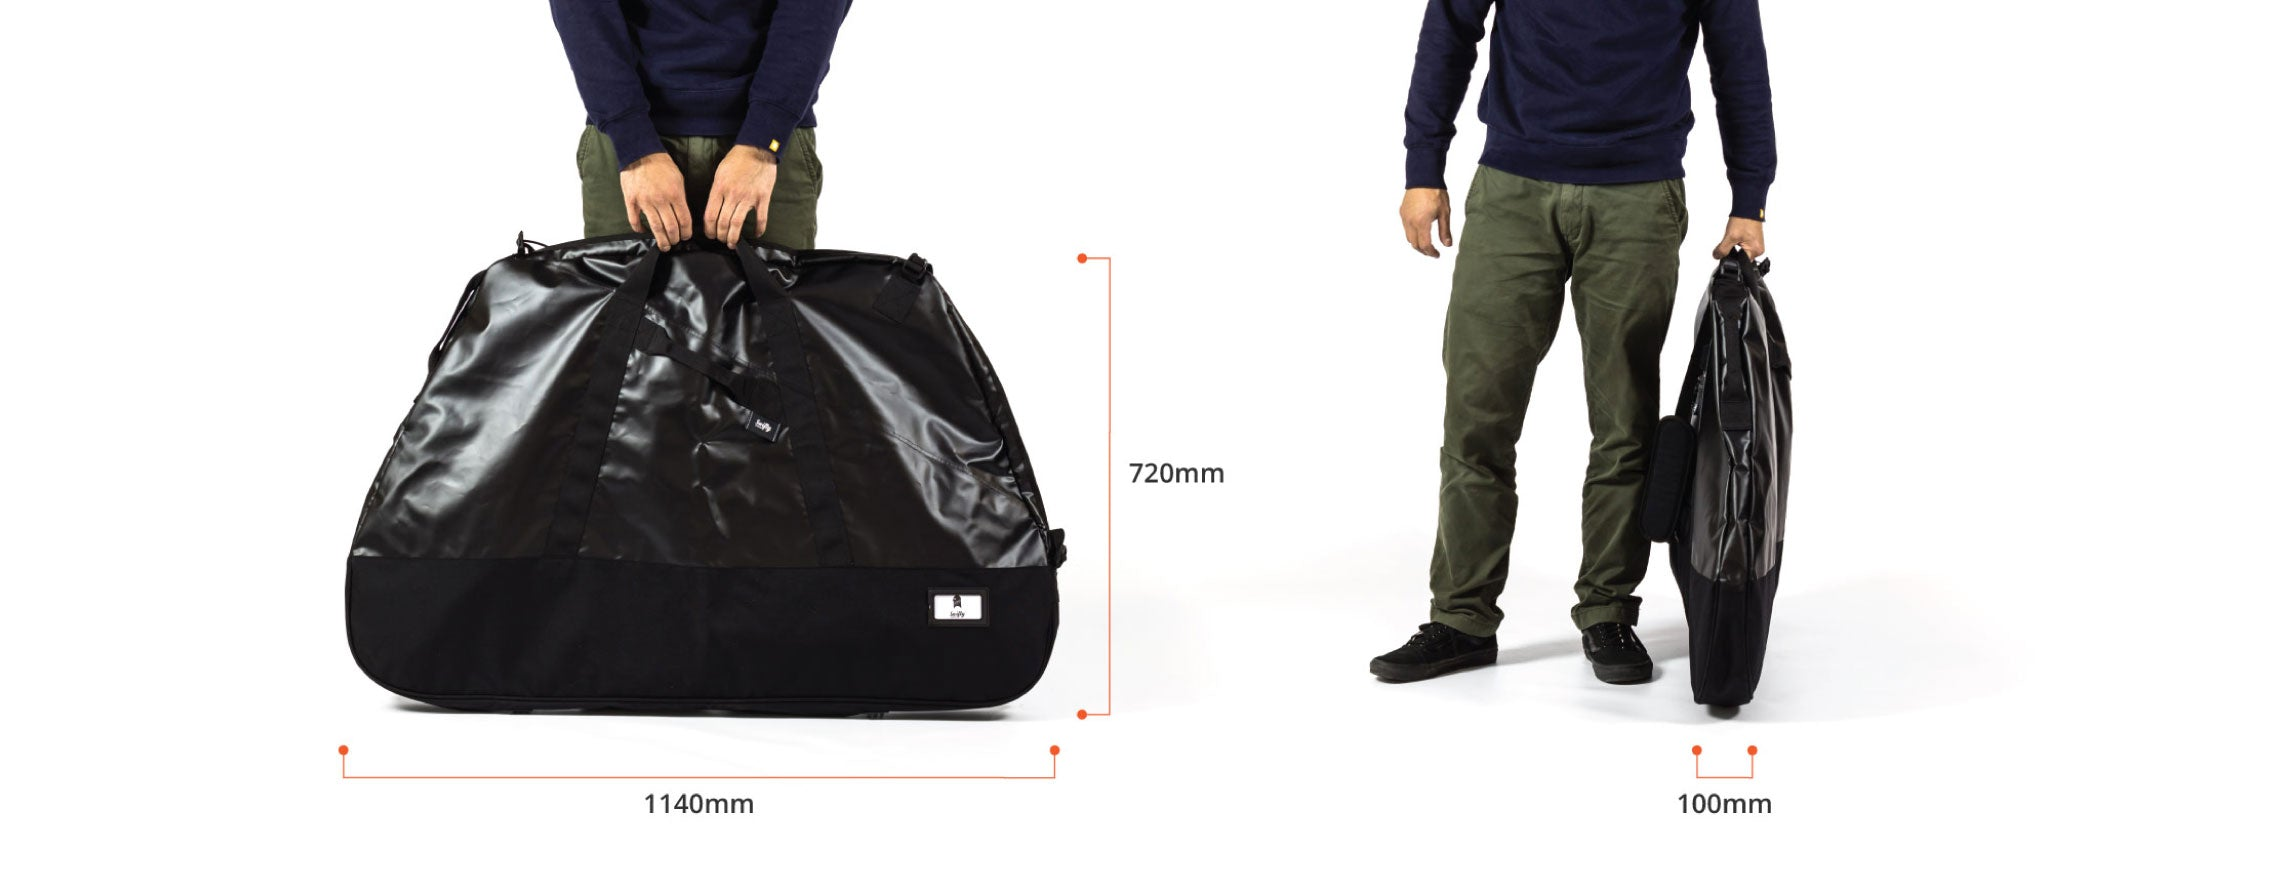 Protective Bag Dimensions, adult scooter bag